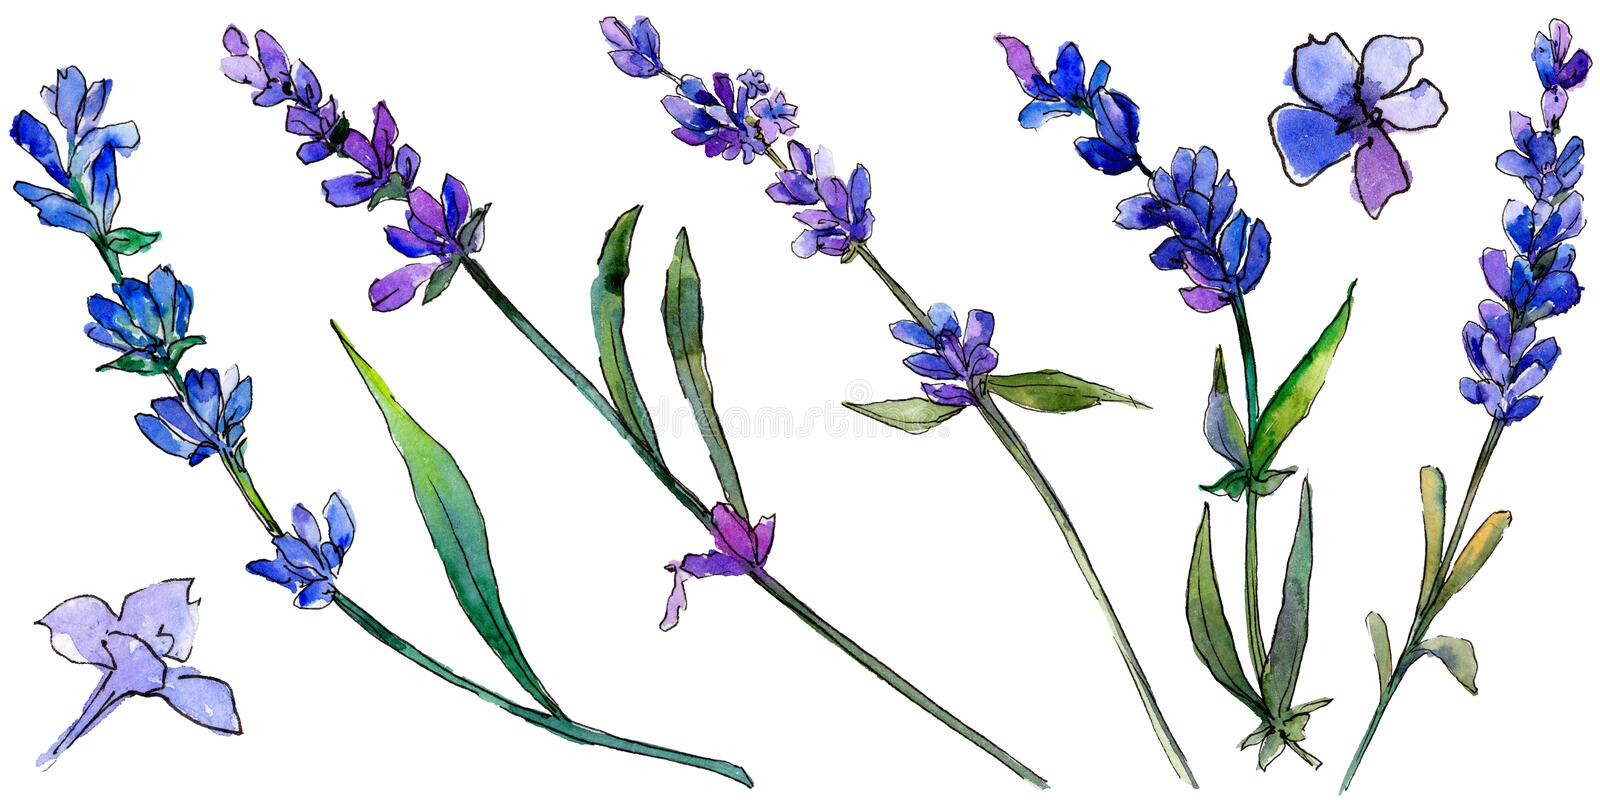 Violet lavender. Floral botanical flower. Wild spring leaf wildflower isolated. royalty free illustration